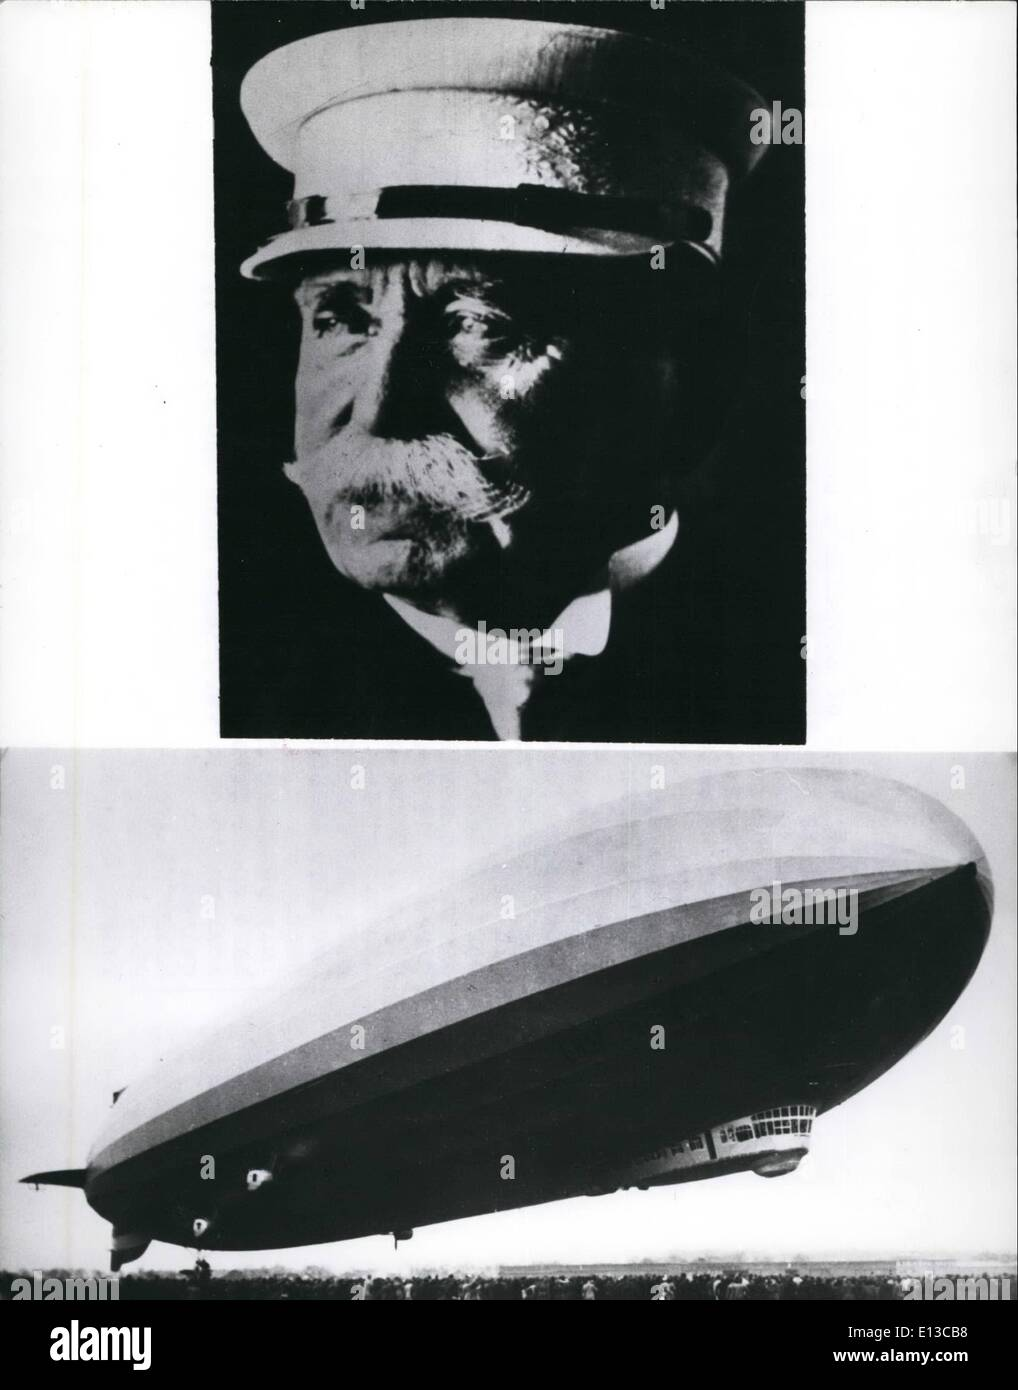 Feb. 29, 2012 - 60 Anniversary of Ferdinand count of Zeppelin's death on march 8 , 1977 there is the 60 anniversary of Ferdinand count of zeppelin's death, zeppelin became history as the inventor of the dirigible. Already in 1974 he world at the construction of a dirigible. In 1892 he tackled this problem assisted by his engineer th. kober, in 1895 his plan was rejected by an Experts commission - Stock Image